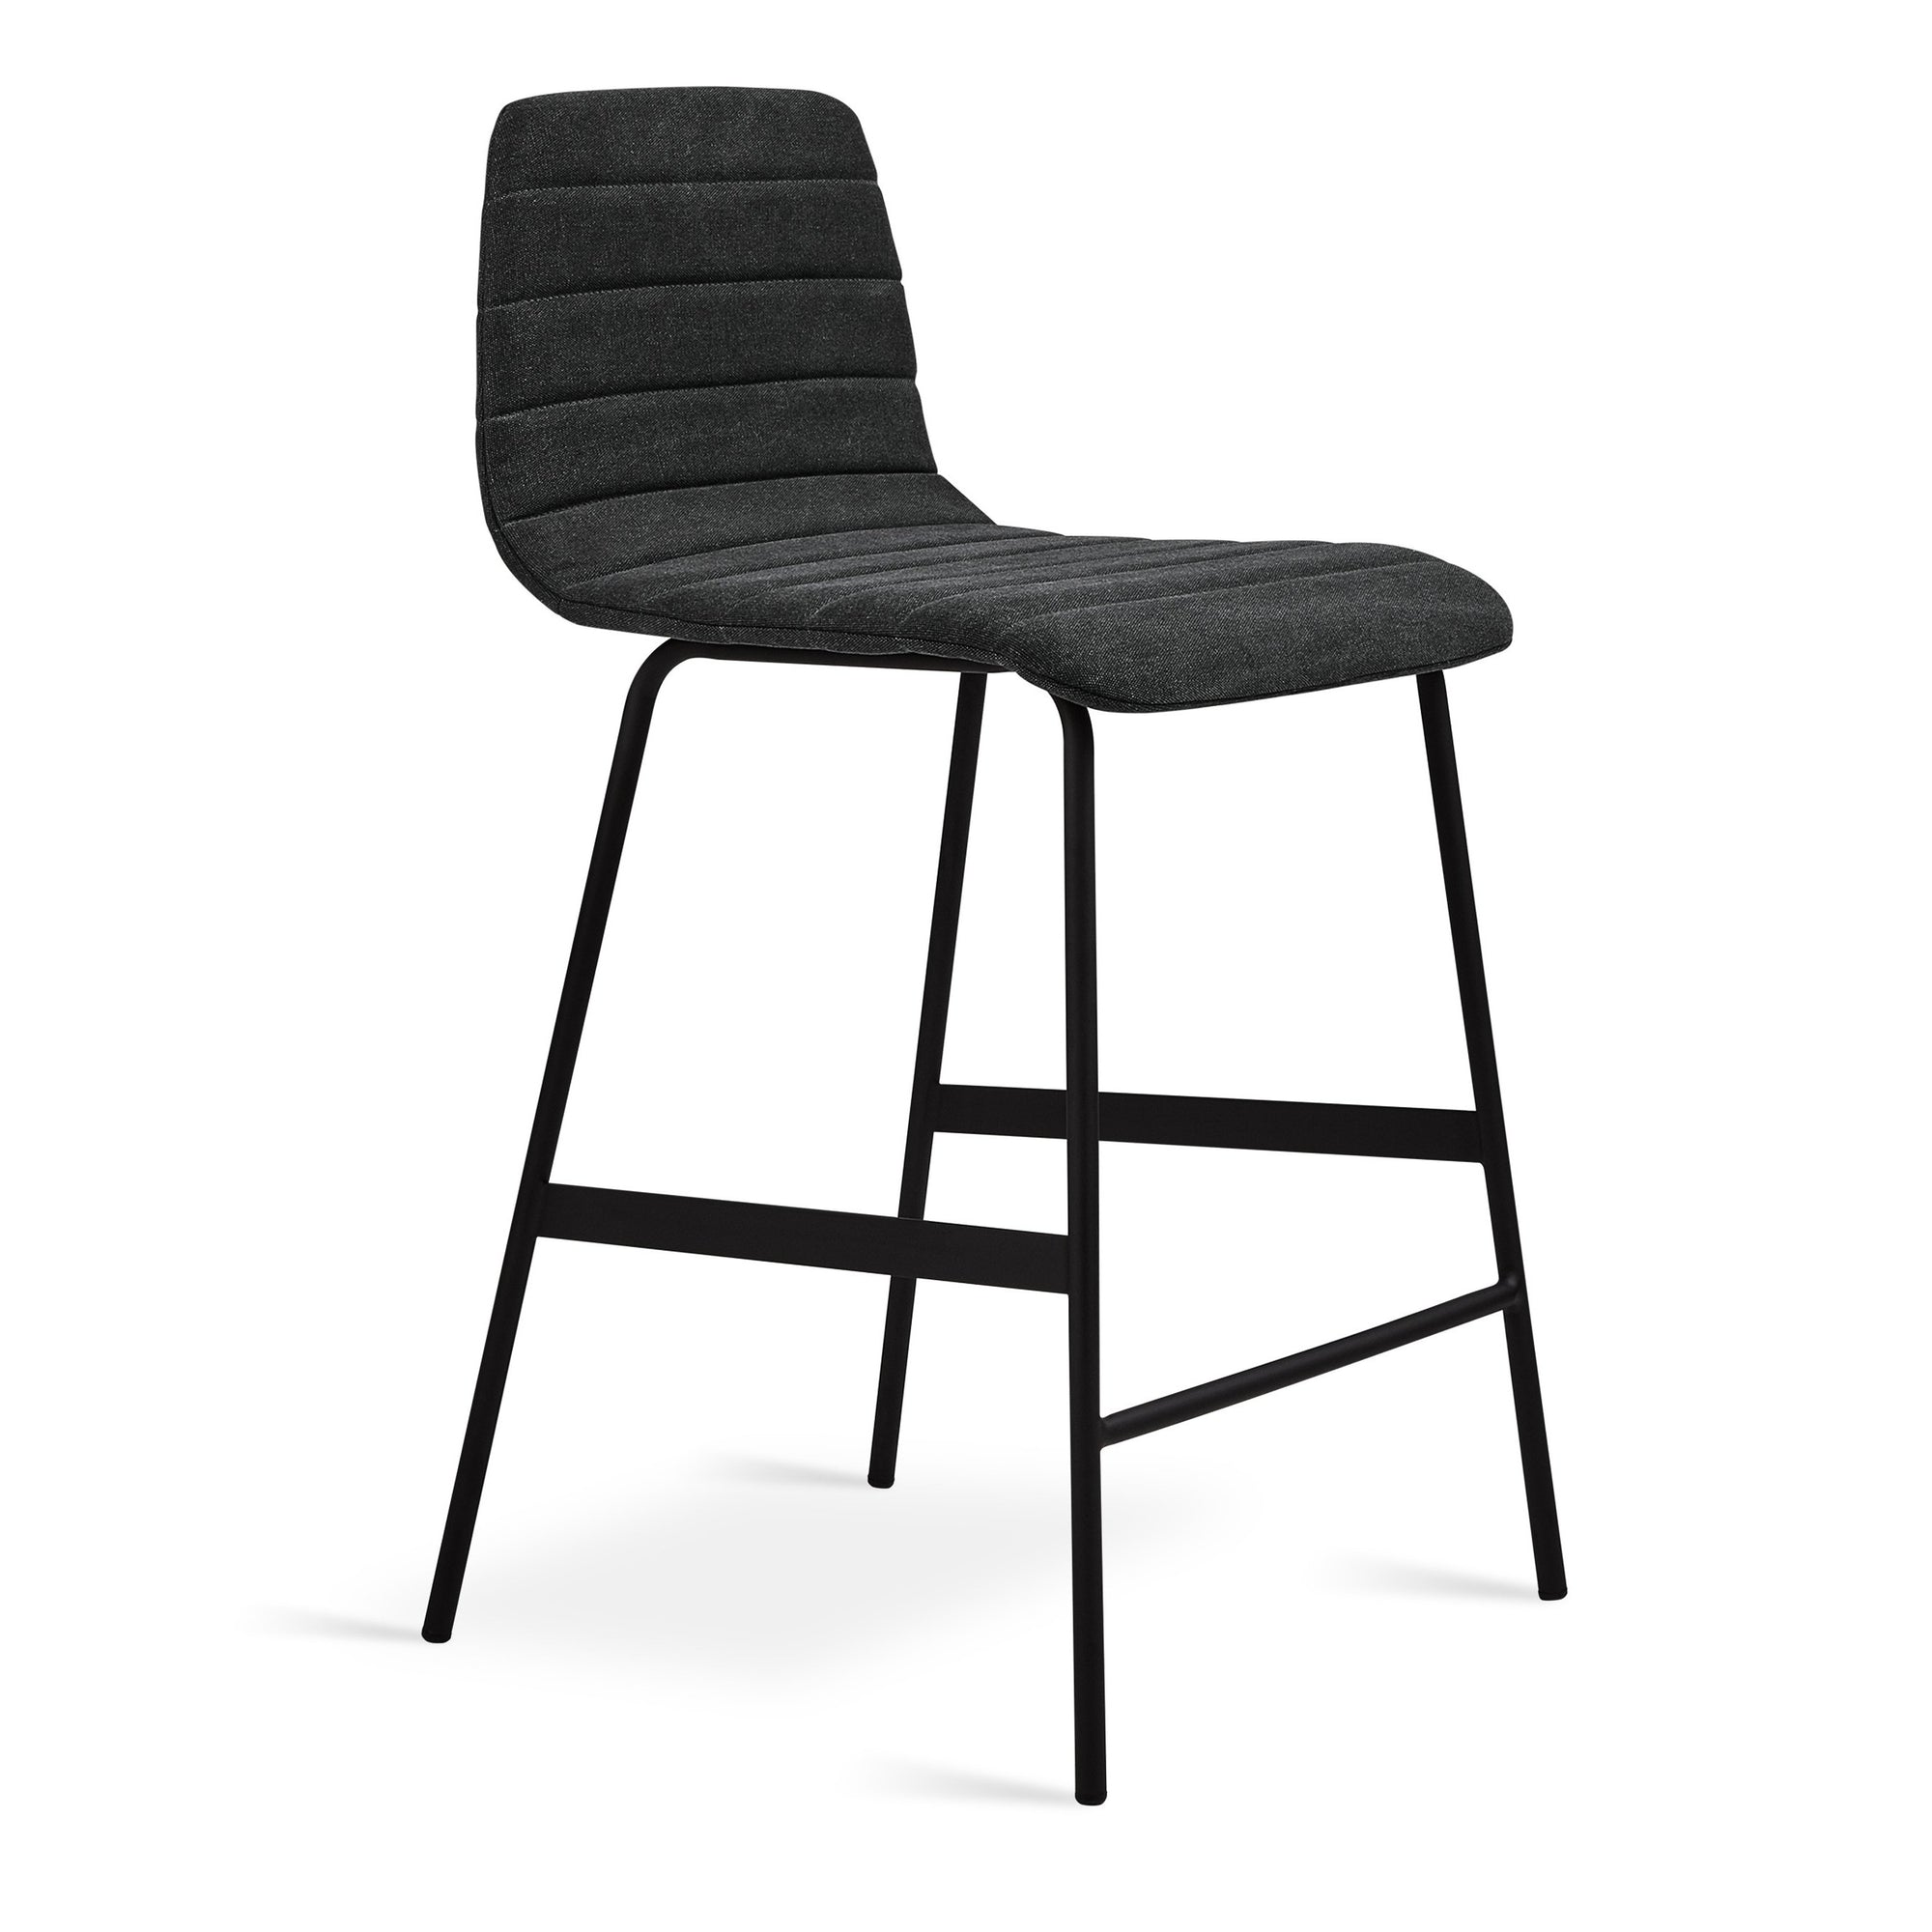 Gus* Modern Lecture Upholstered Bar Stool